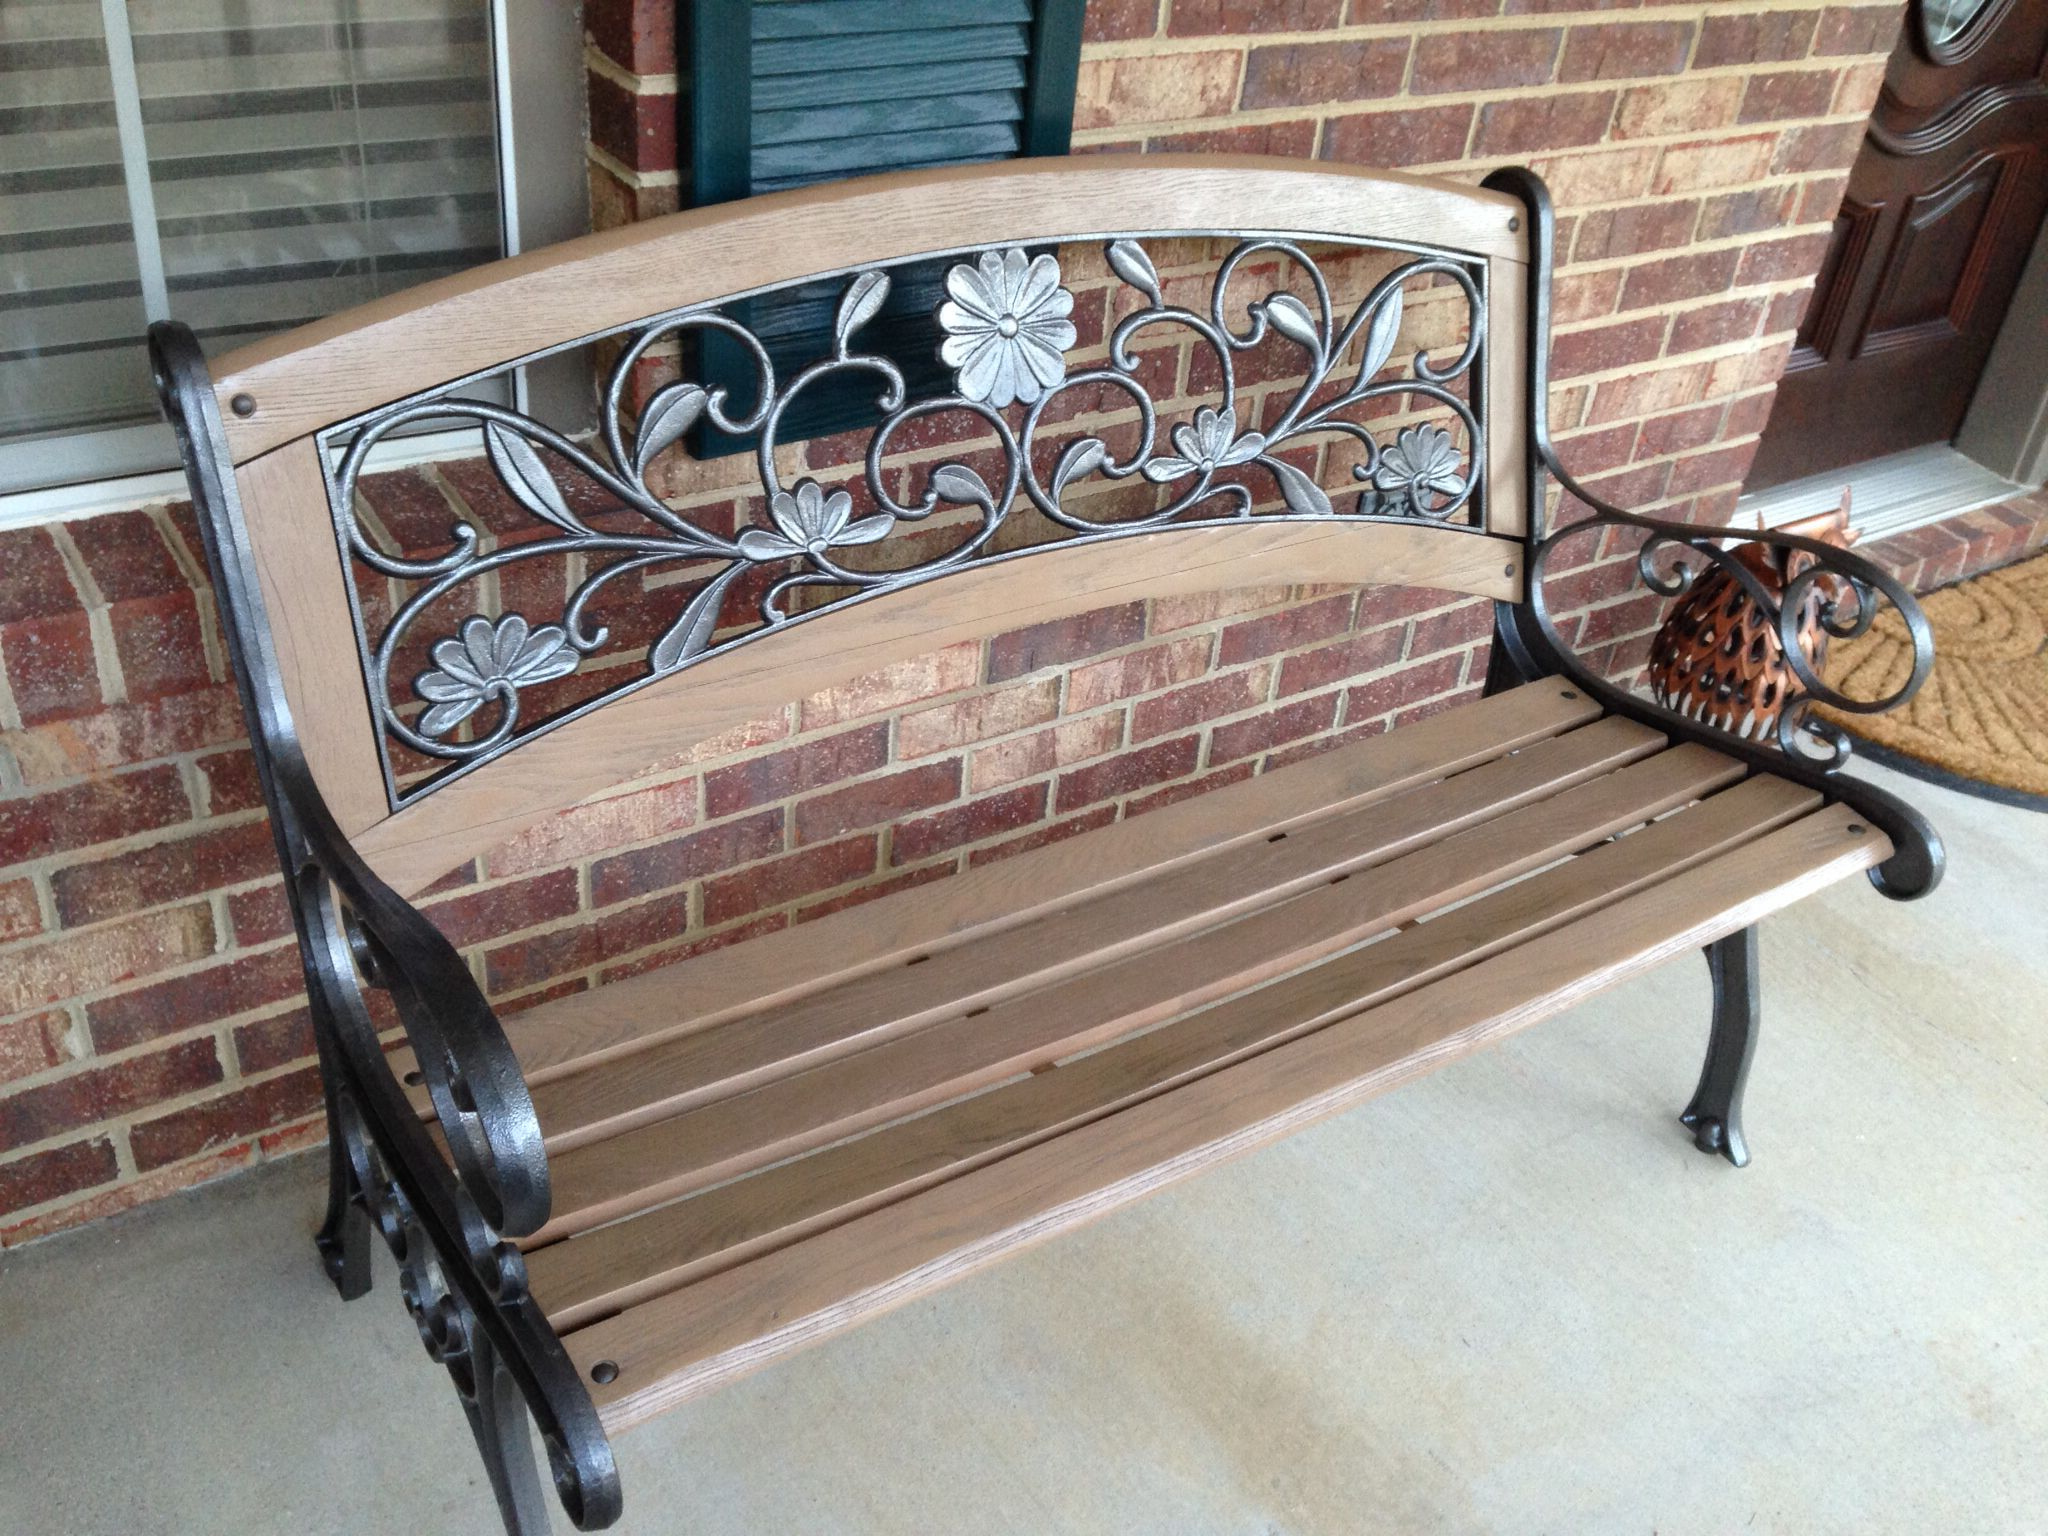 2020 Refinished Bench. Wood Is Rustoleum Satin Nutmeg (View 20 of 30)